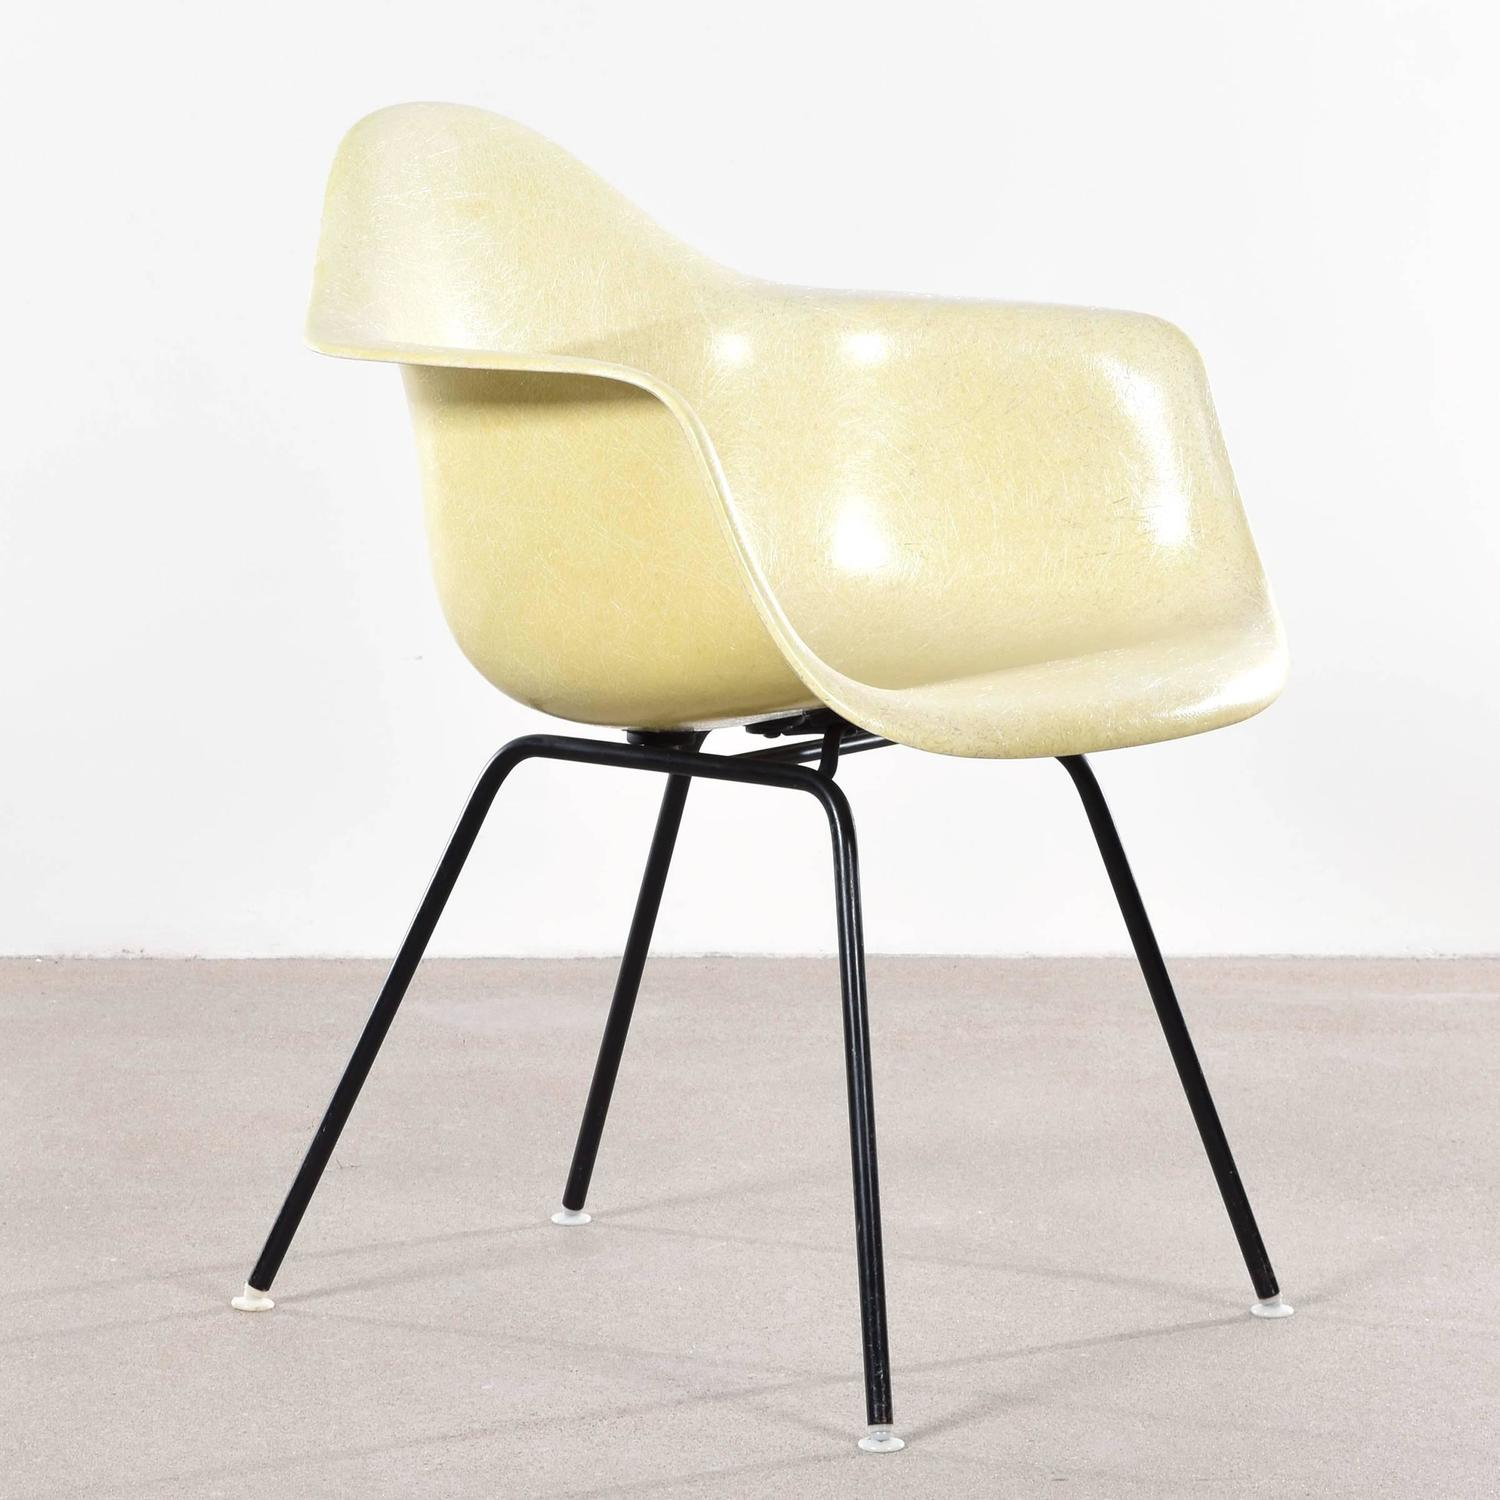 Eames Lemon Yellow DAX Dining Chair for Herman Miller at  : LY1611DAX006z from www.1stdibs.com size 1500 x 1500 jpeg 141kB